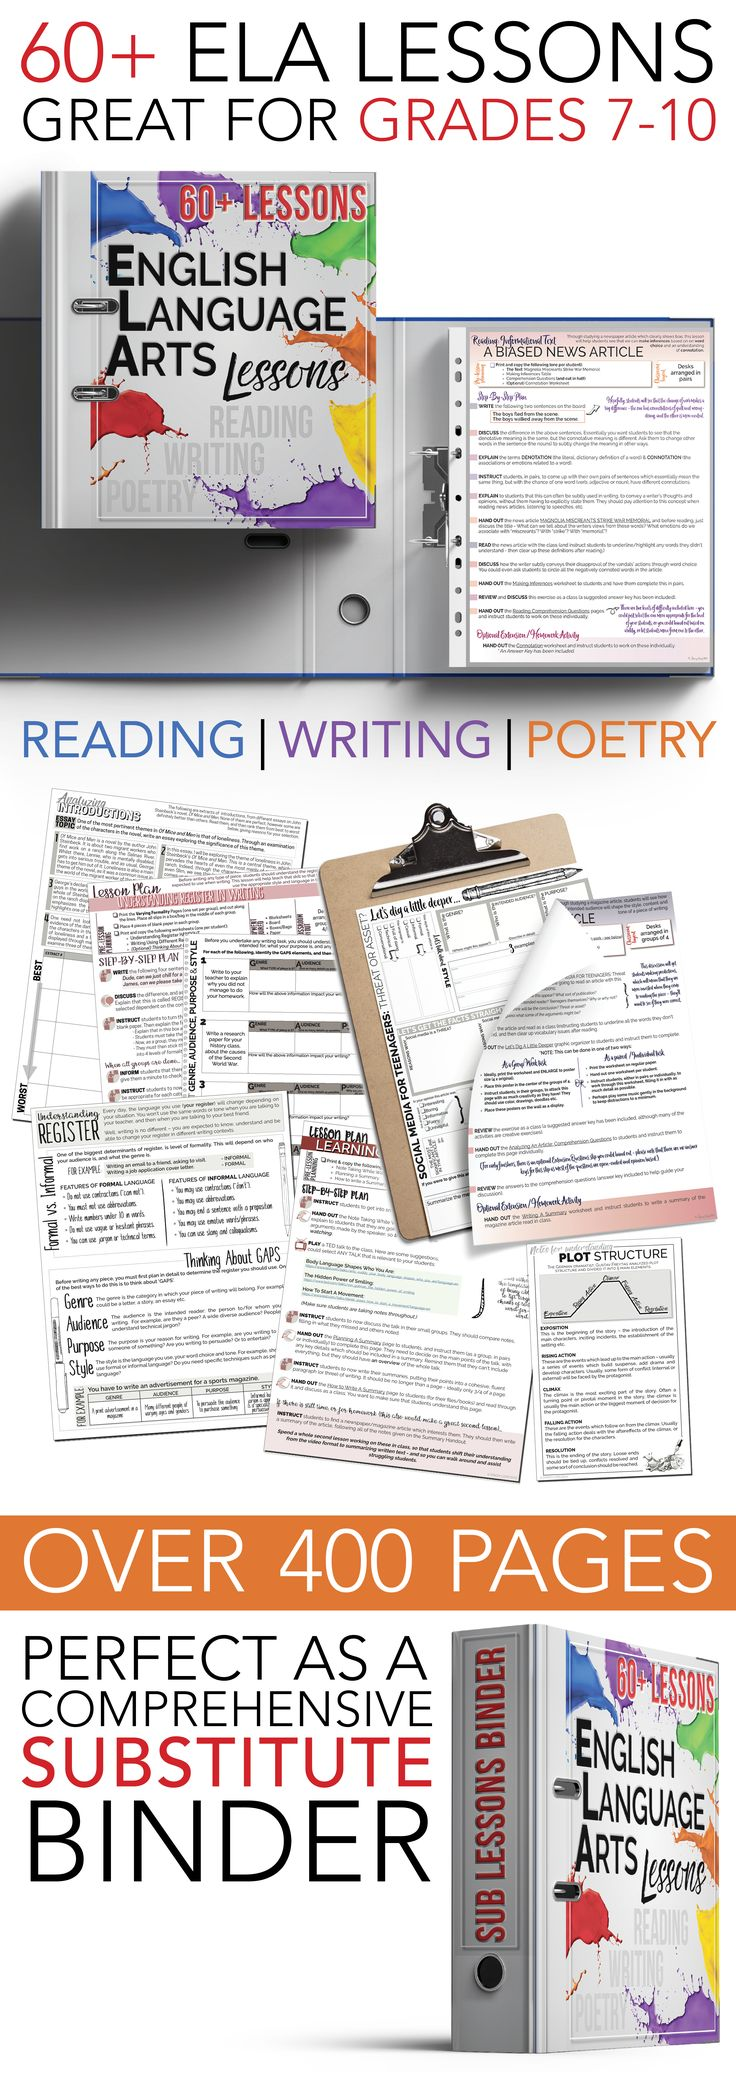 Over sixty individual ELA lesson plans with worksheets, handouts and answer keys. A must have for any grade 7 - 10 English teacher; perfect for sub lessons.